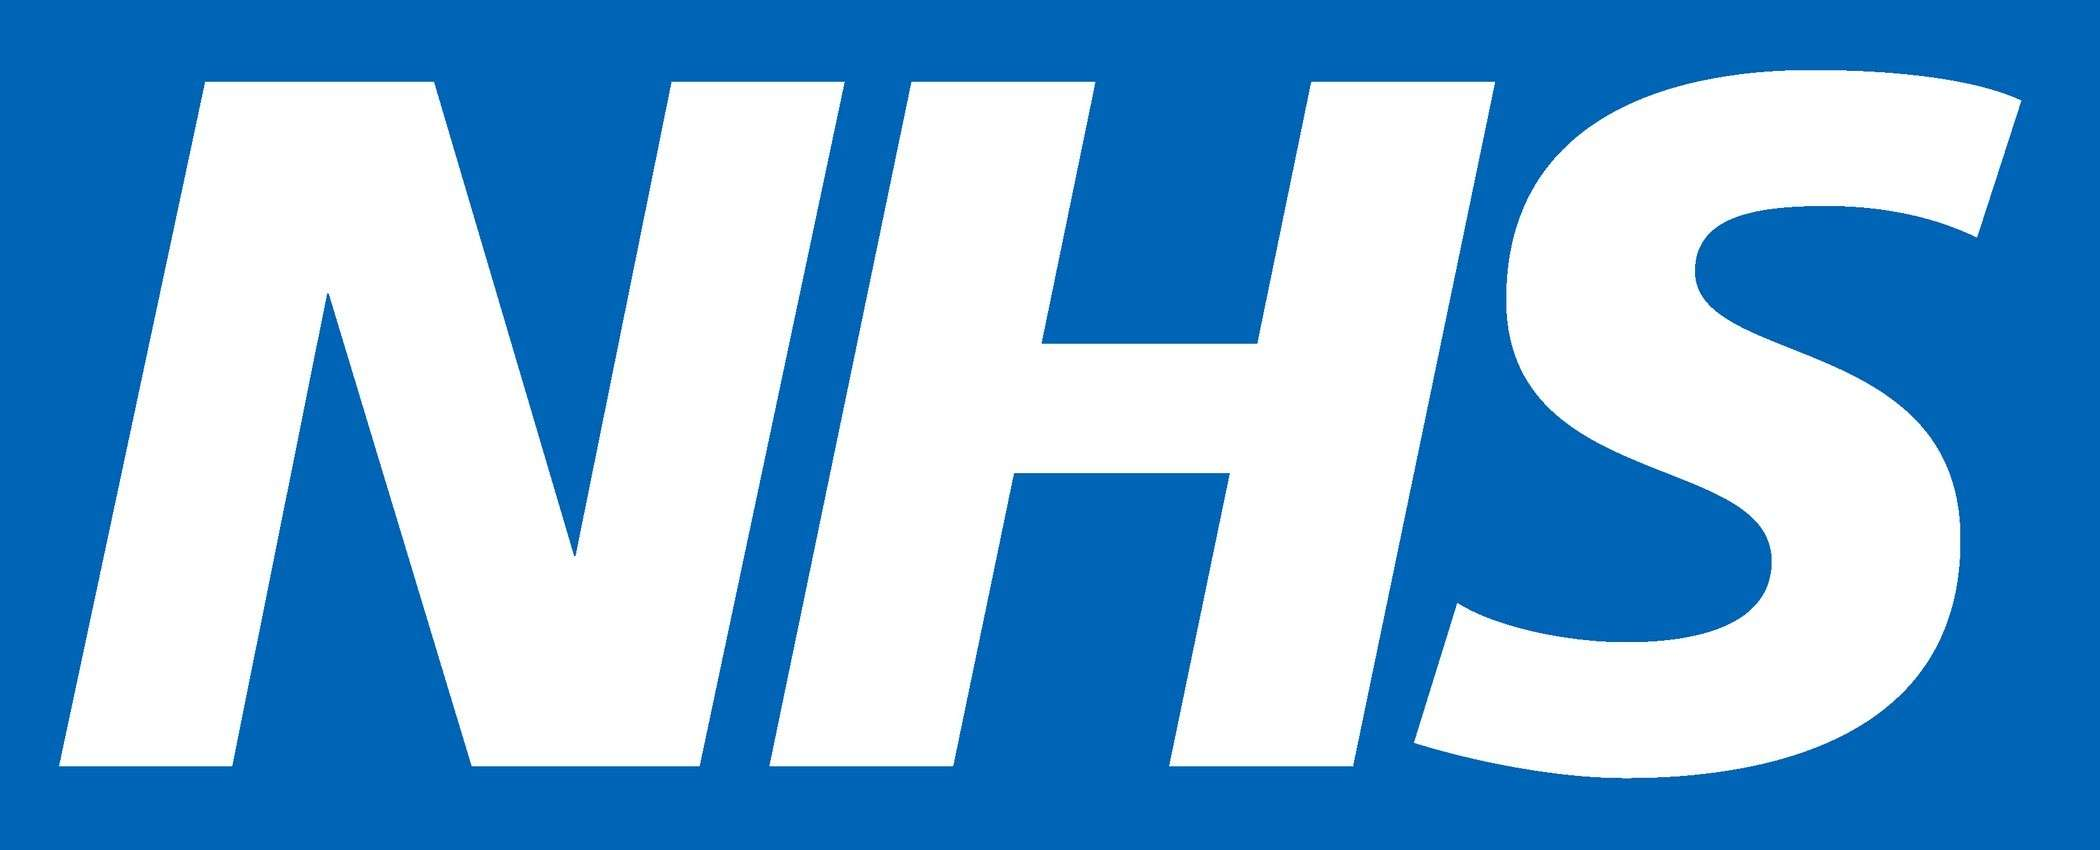 National-Health-Service-NHS-Logo